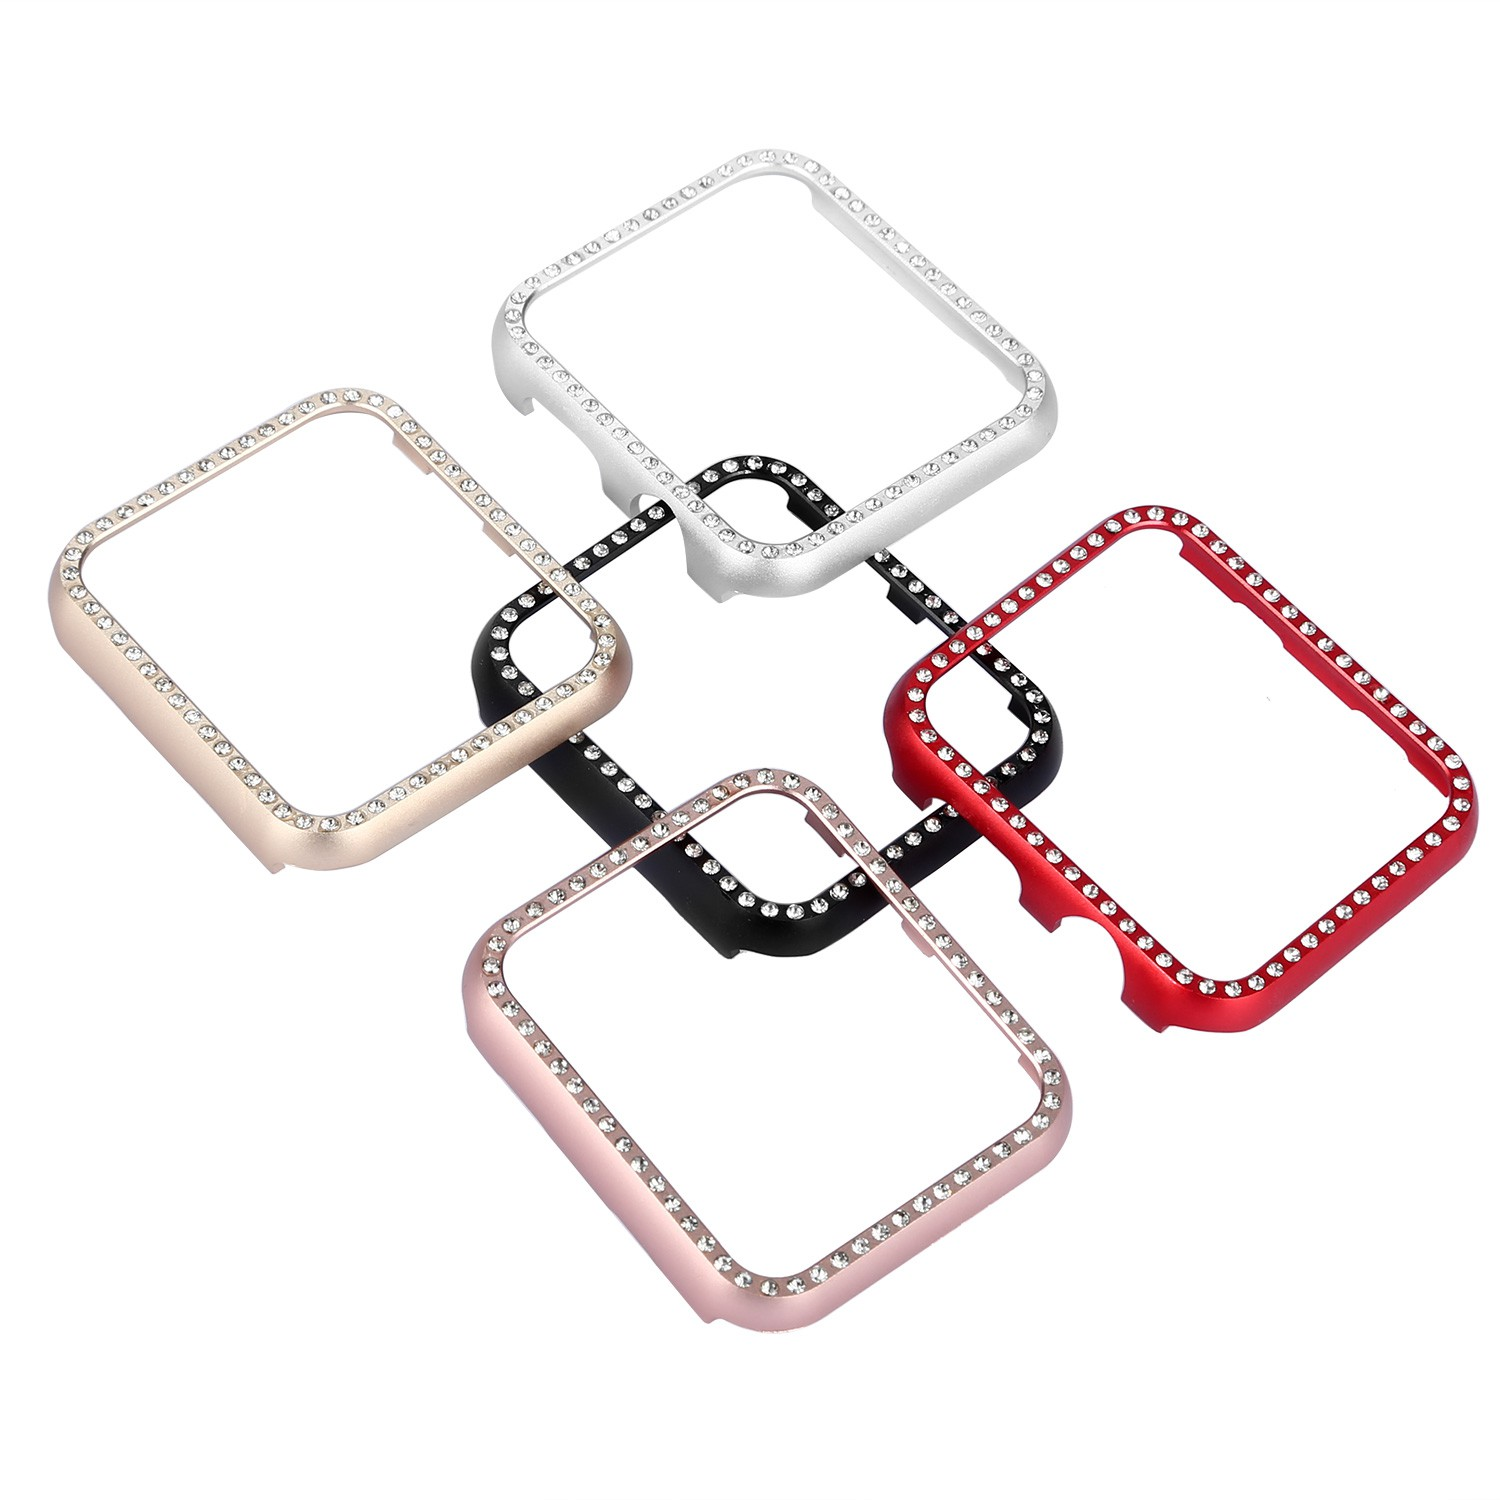 Bling Glitter Diamond Bumper Protective Case for Apple Watch Cover Series 3 2 1 38mm 42mm Case for iWatch Aluminum Metal Cover